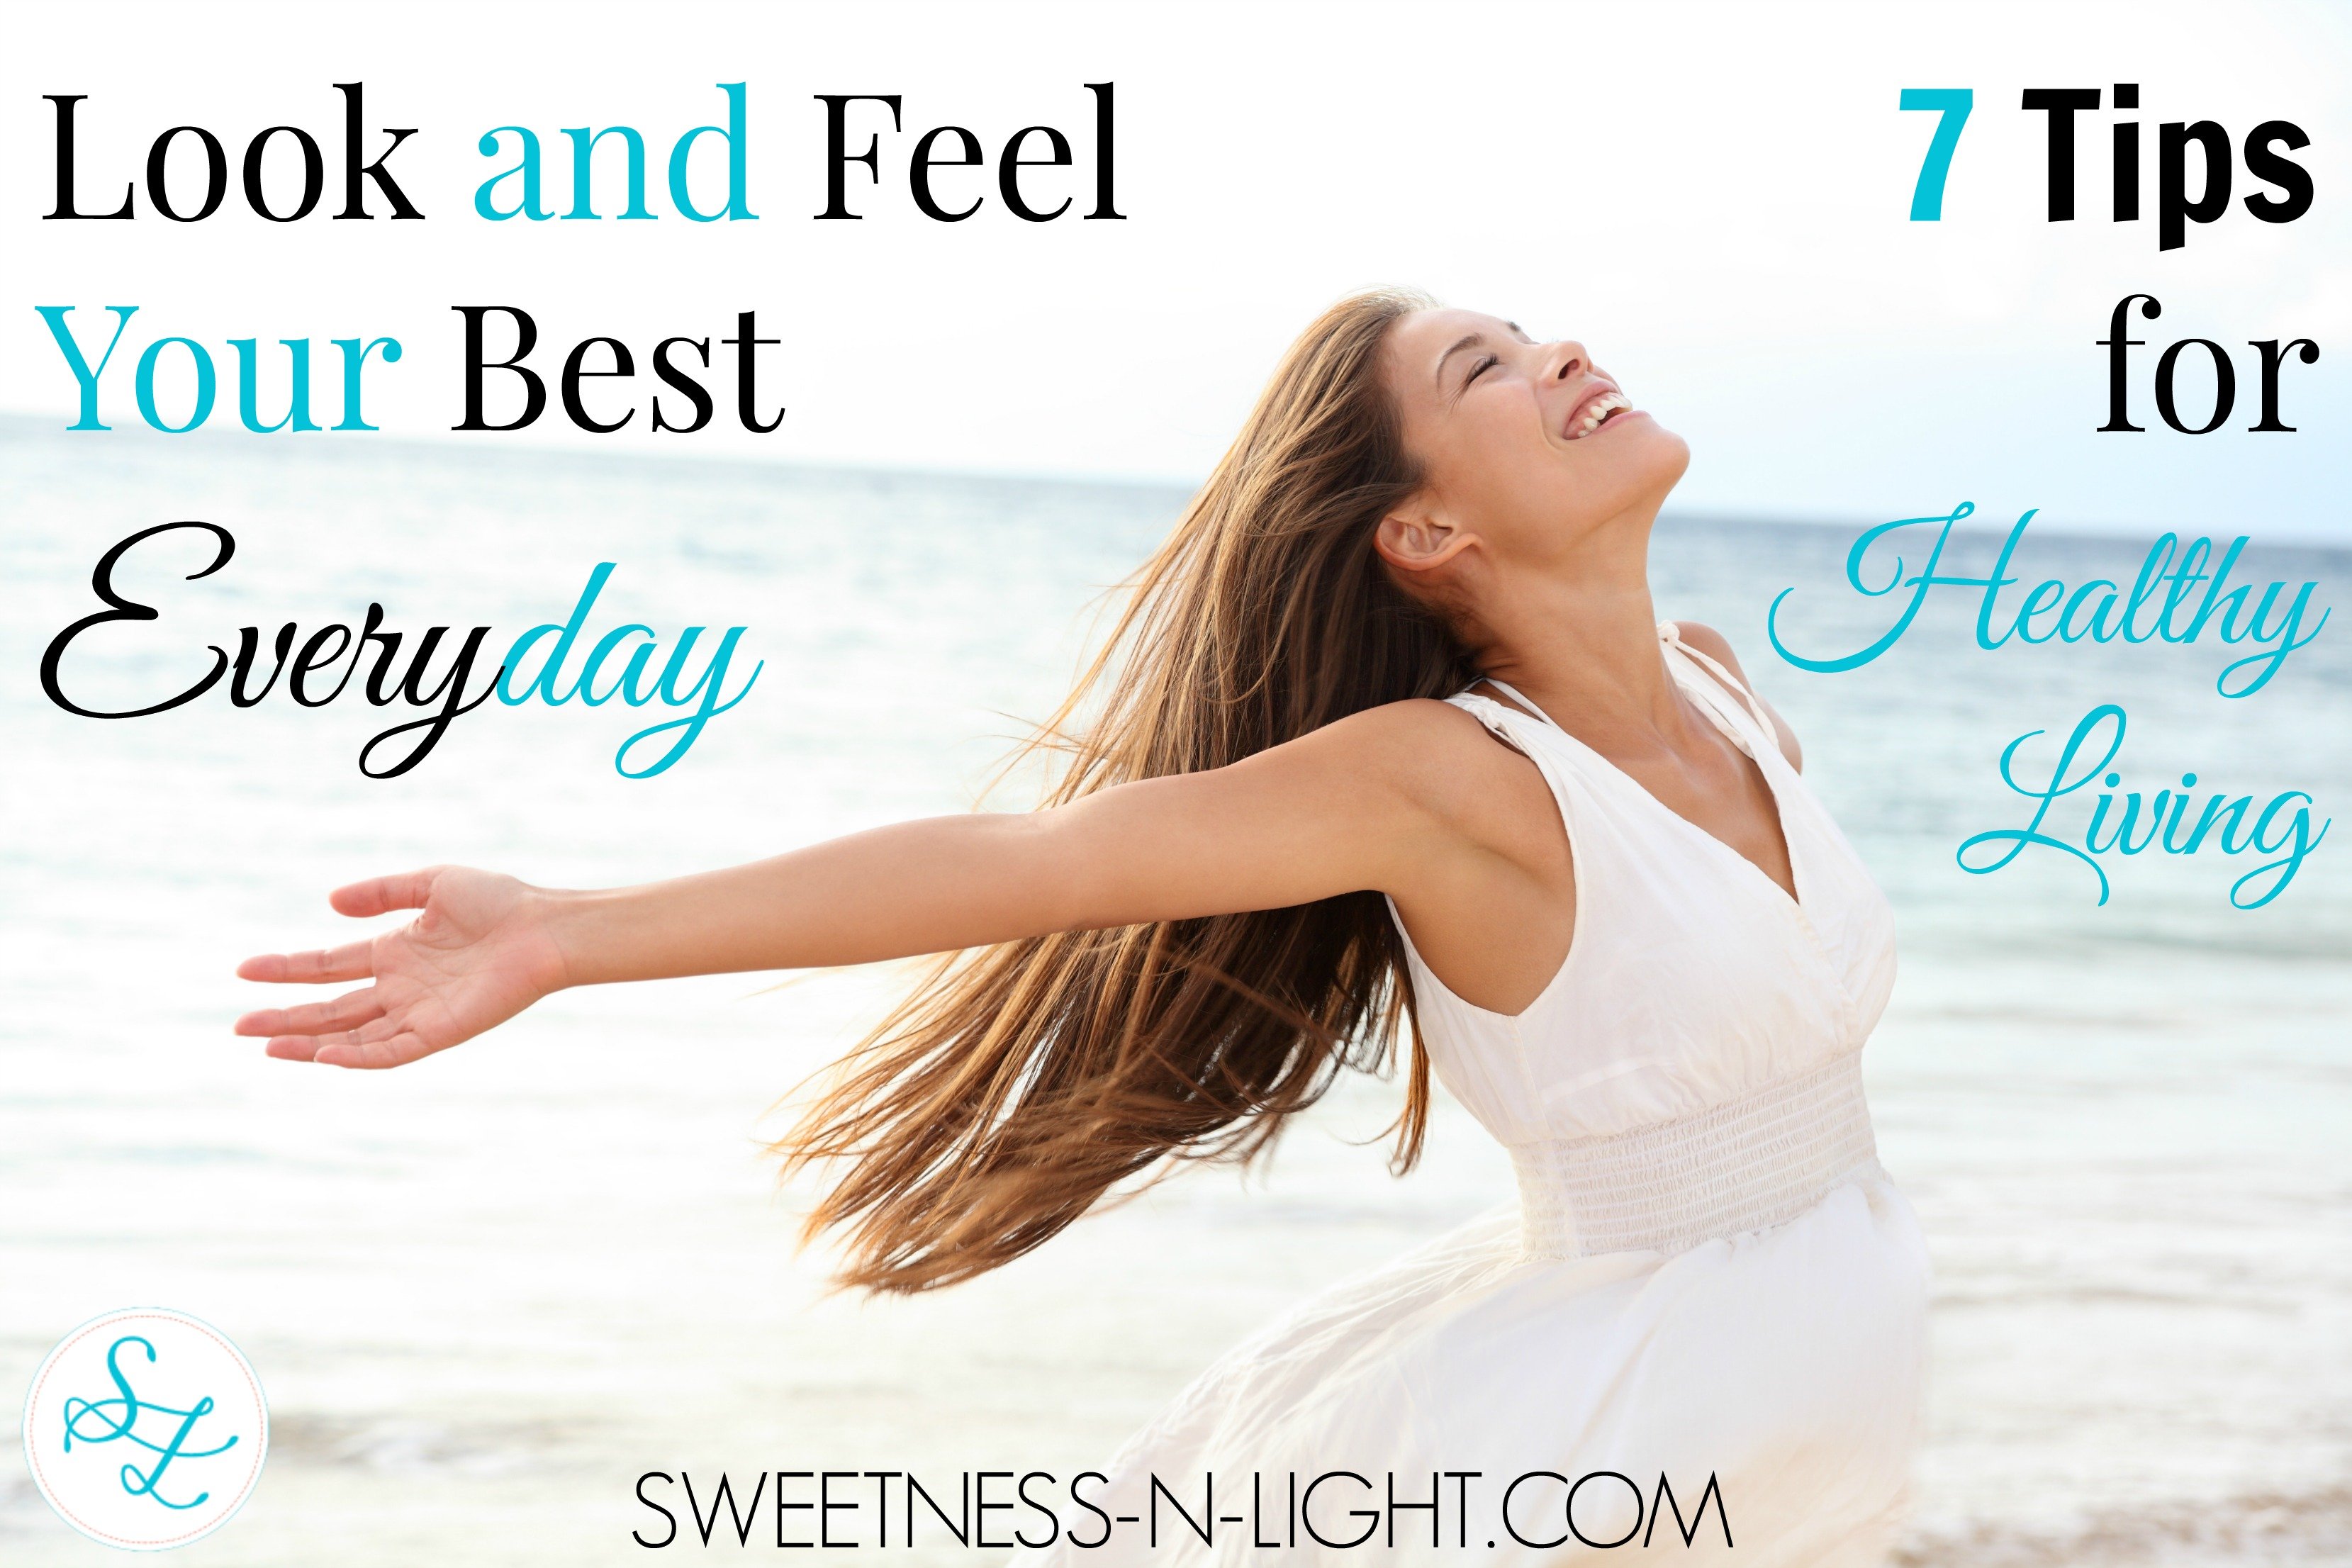 Look and Feel Your Best 7 Tips